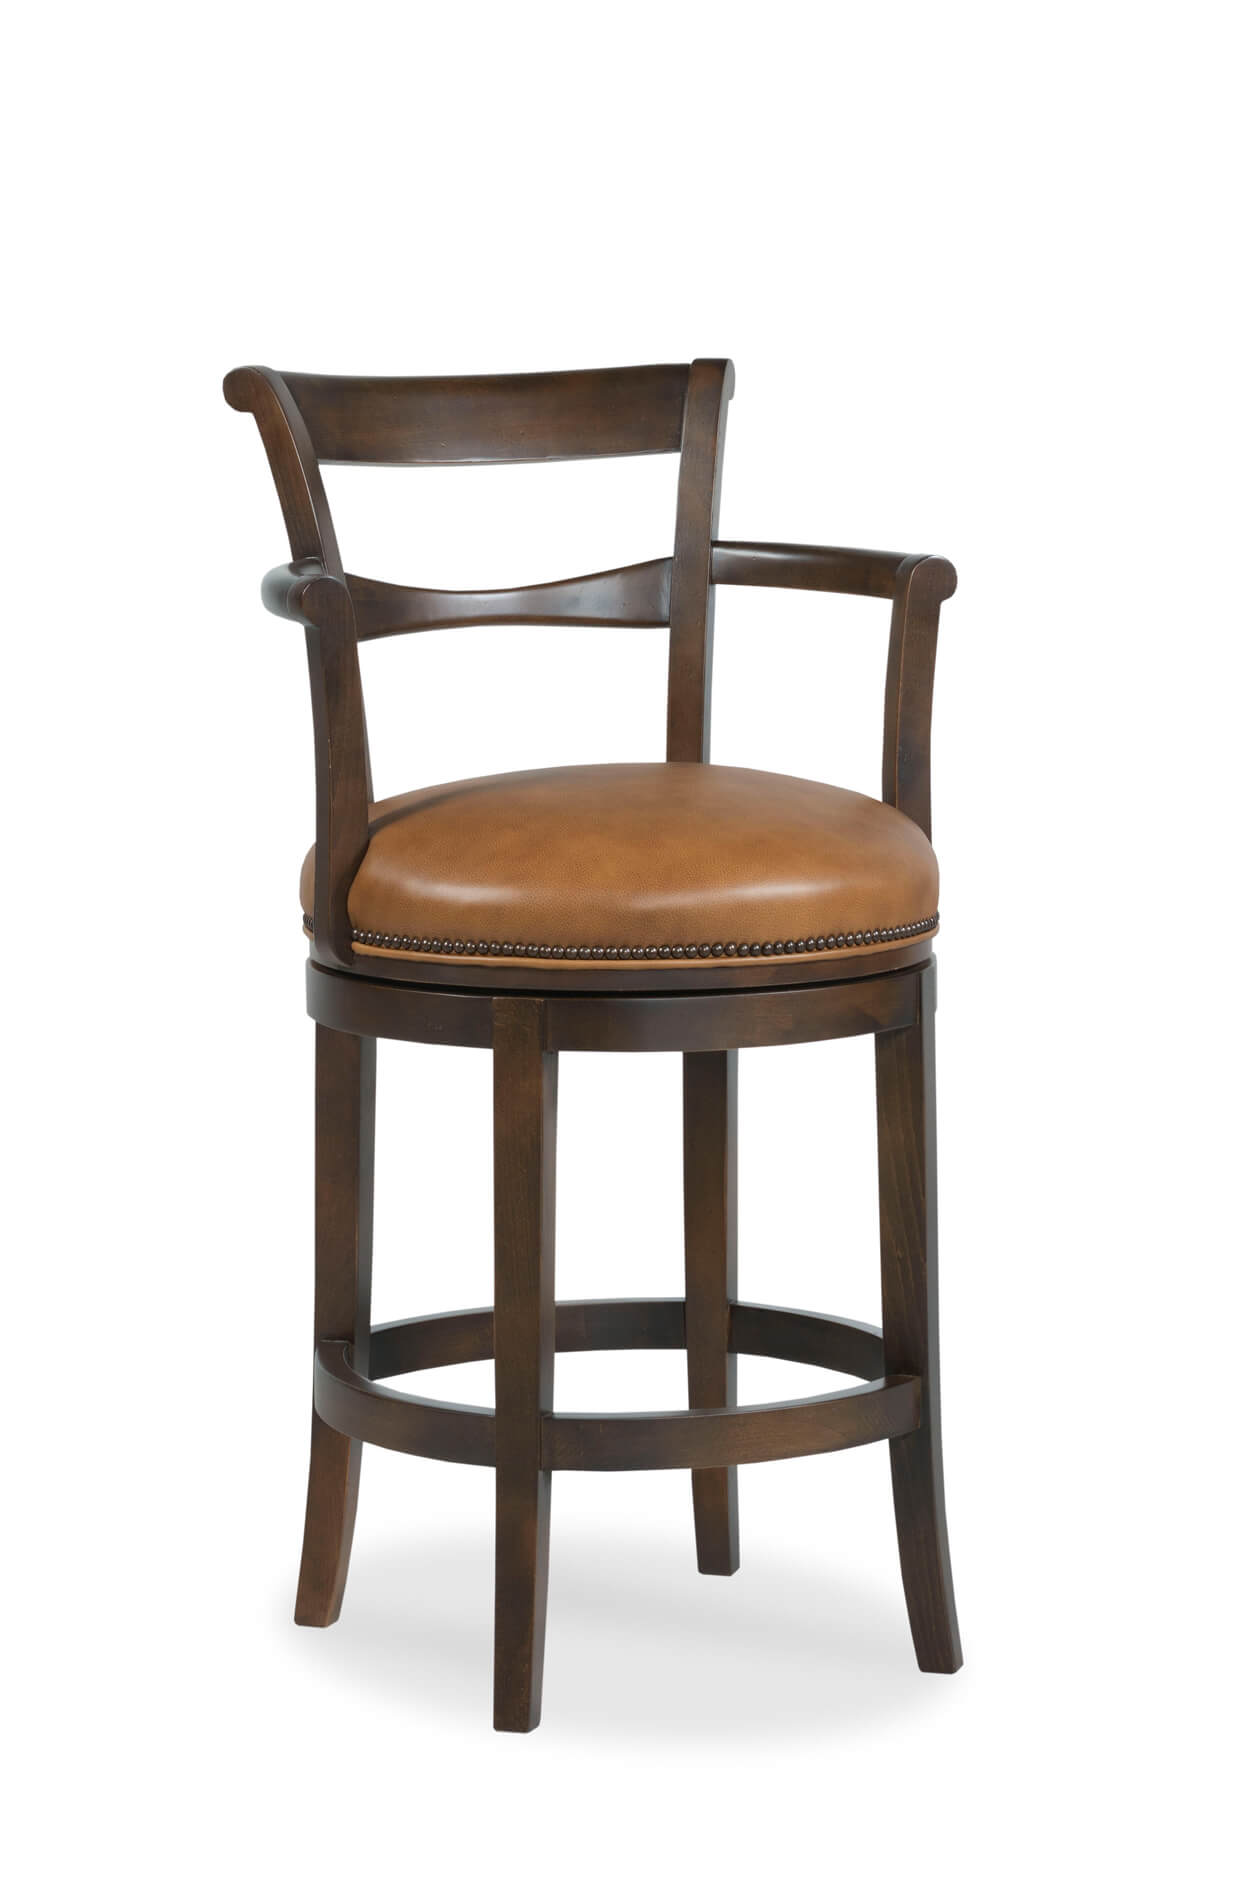 Outstanding French 75 Wooden Swivel Stool With Arms Pdpeps Interior Chair Design Pdpepsorg